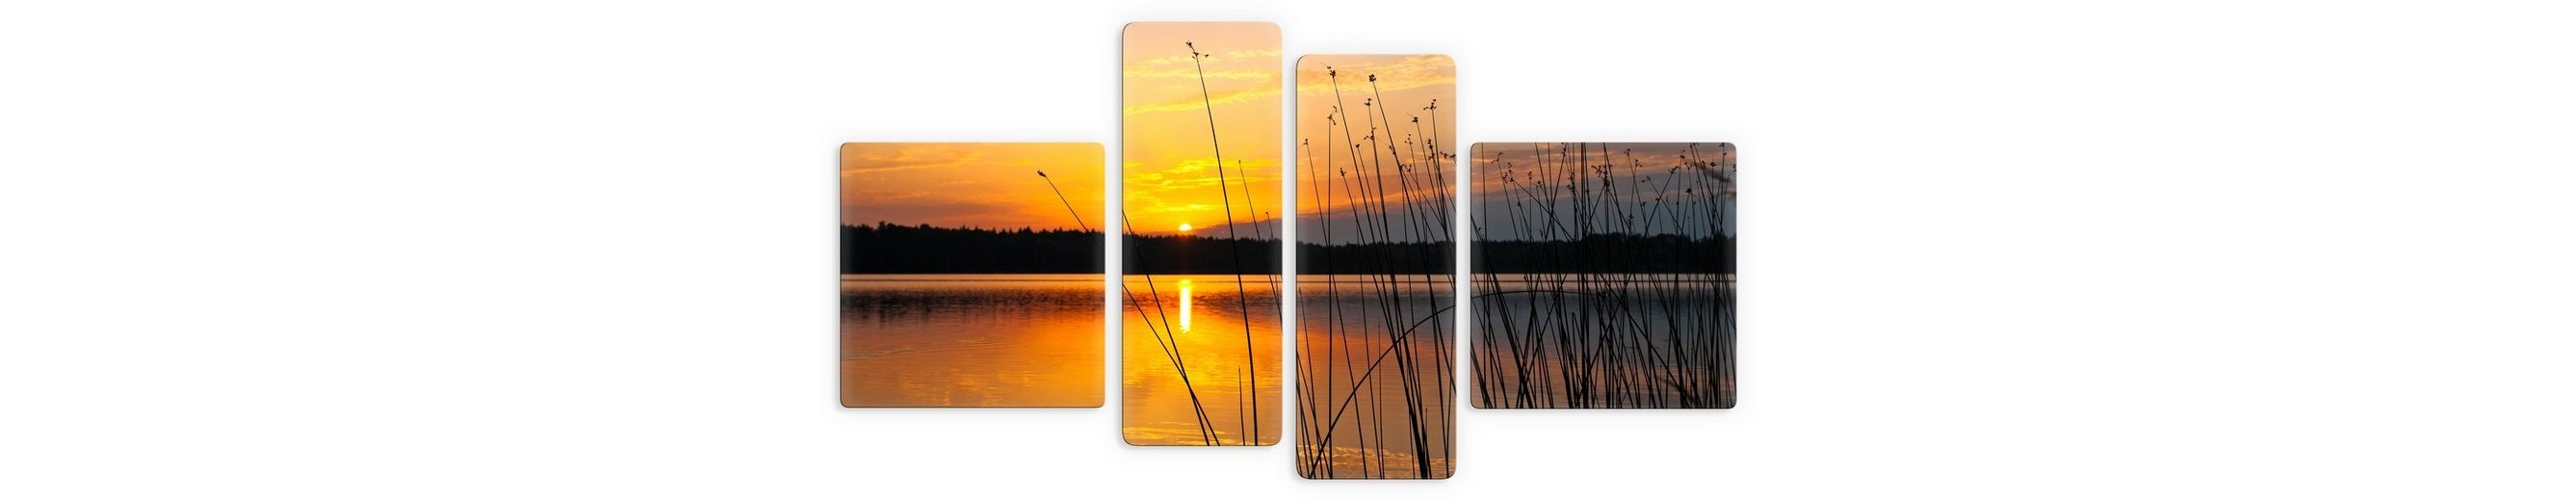 Premium Collection by Home affaire Glasbild, »Sonnenuntergang am See«, (4-tlg.)